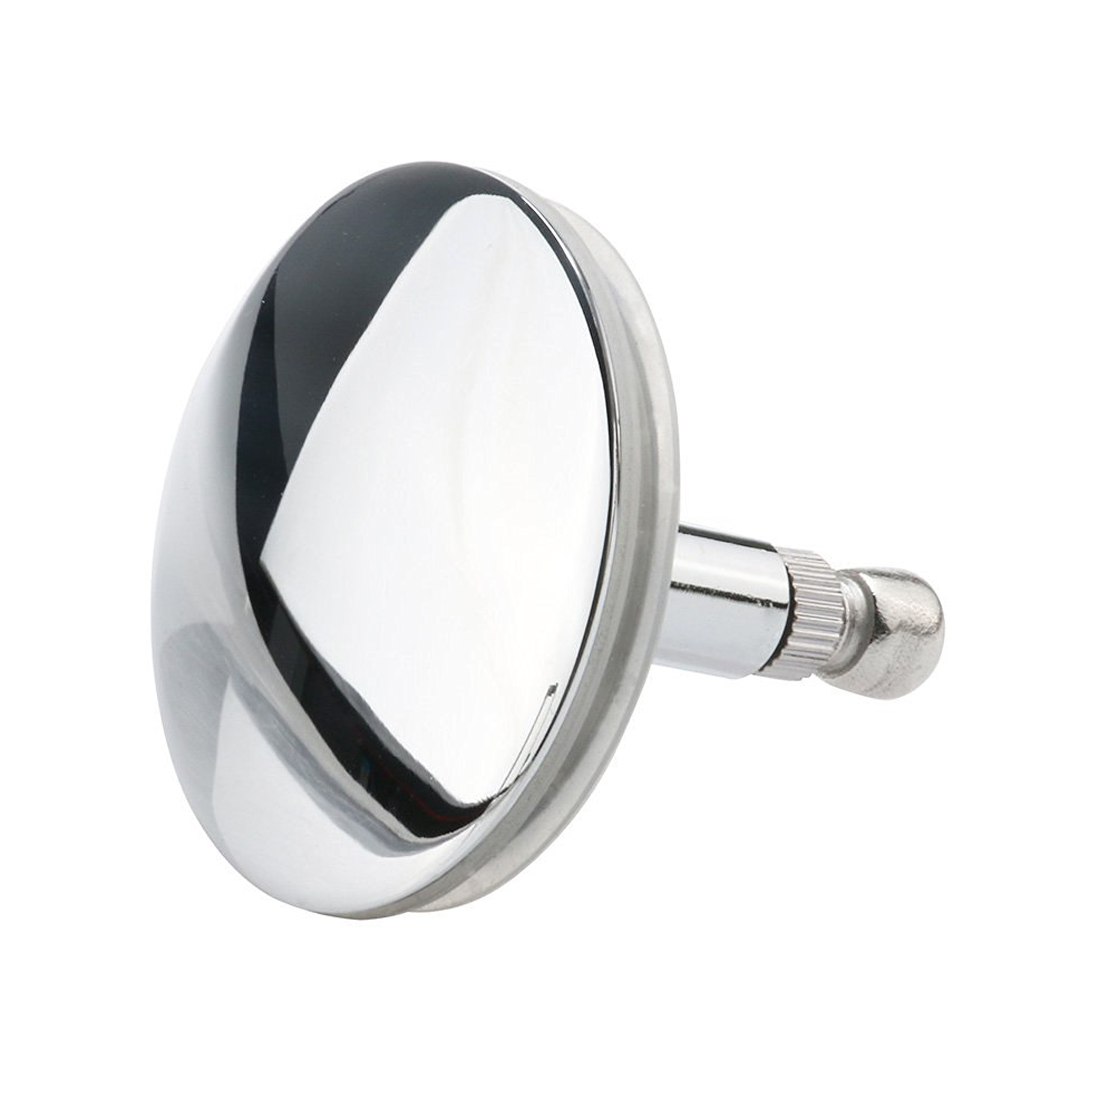 Image Is Loading Chrome Bathtub Basin Drain Stopper Plug Bathroom Bath